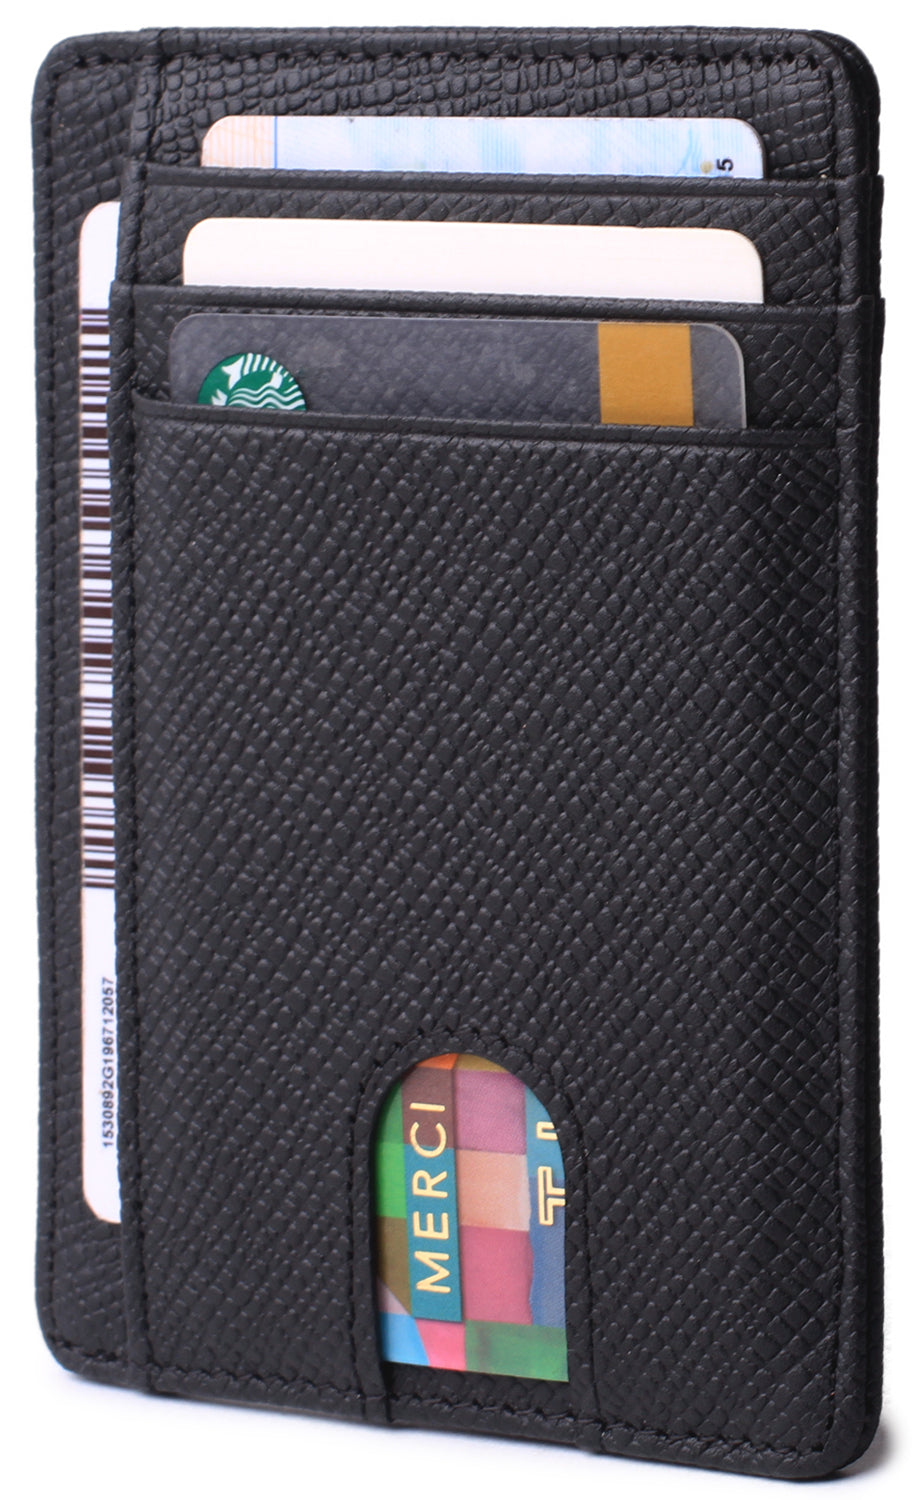 Slim Minimalist Front Pocket RFID Blocking Leather Wallets for Men & Women Black - Borgasets